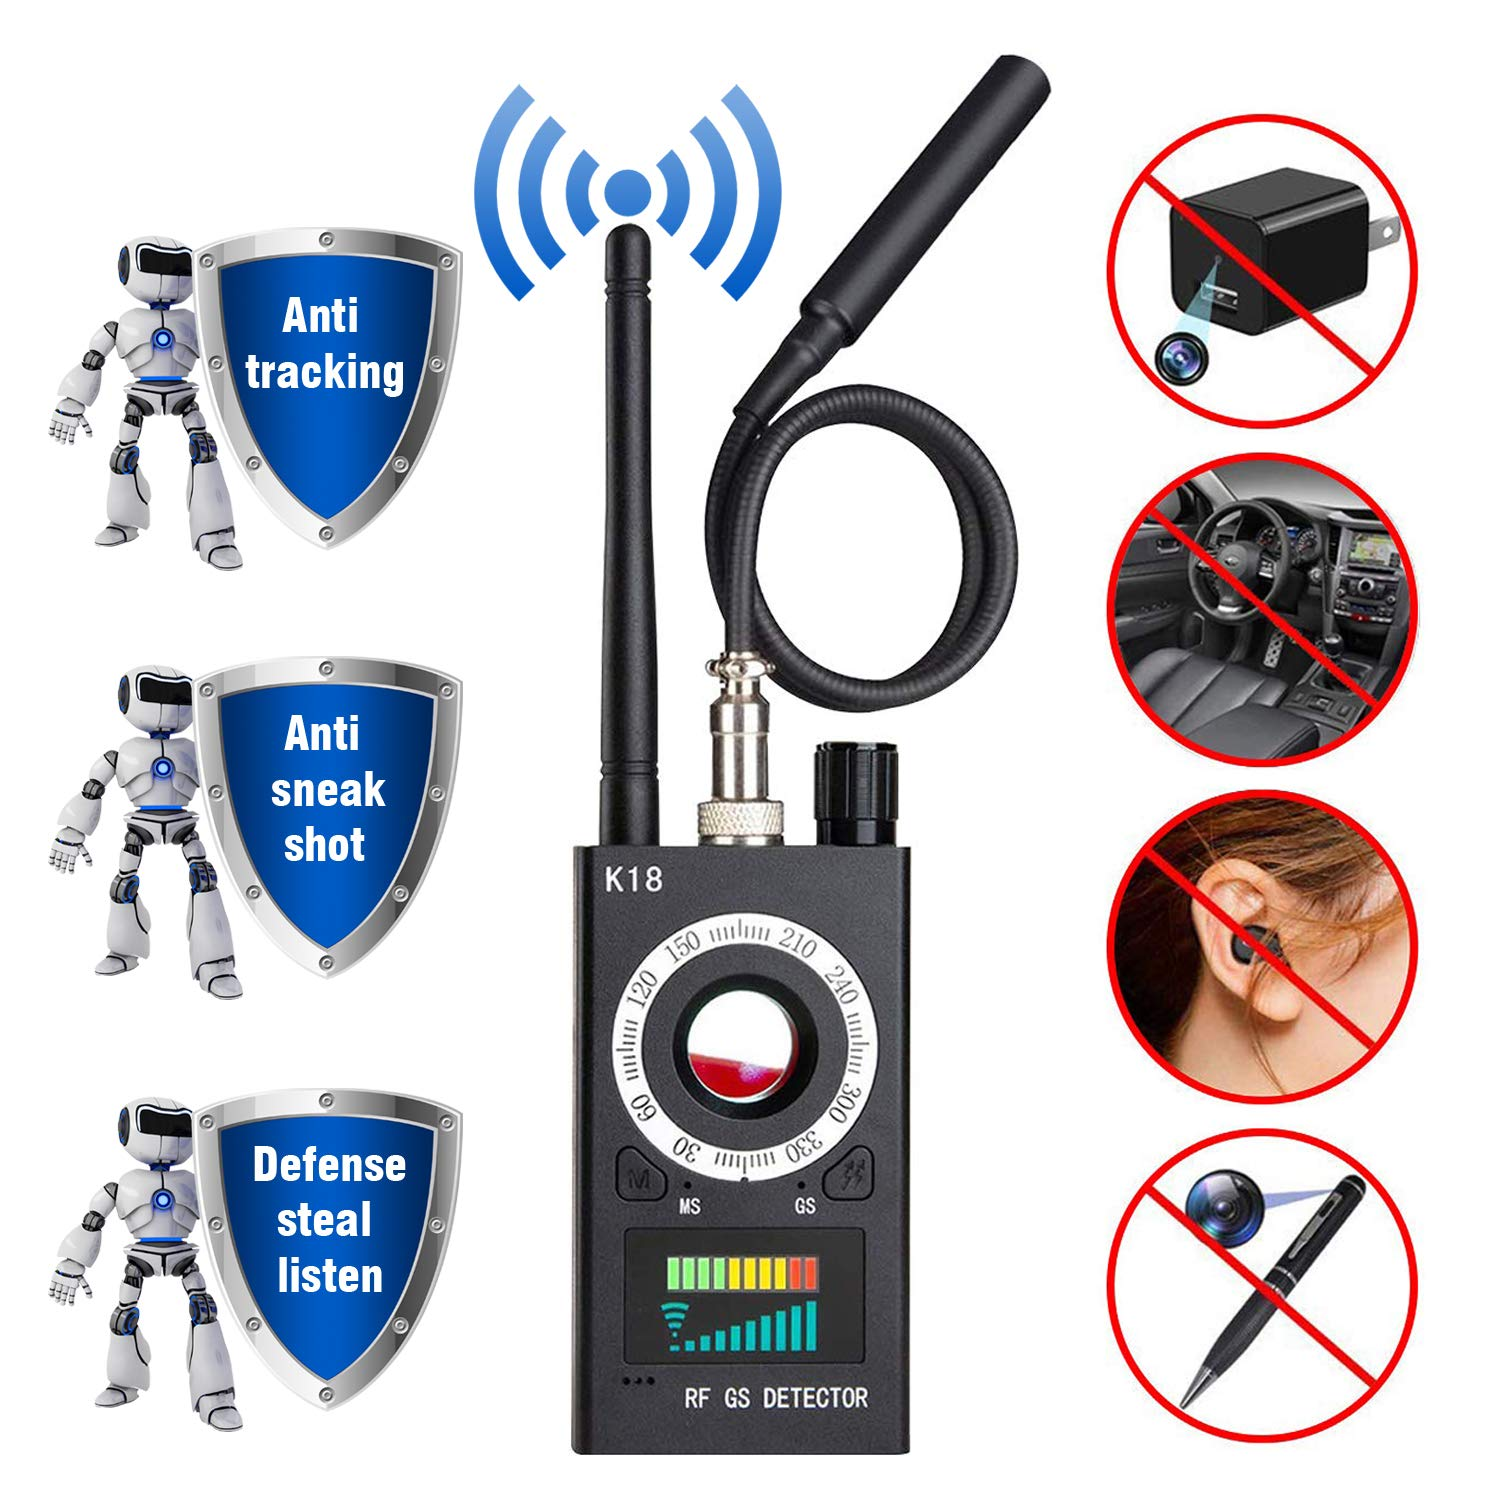 Anti Spy Detector & Camera Finder RF Signal Detector GPS Bug Detector Hidden Camera Detector for GSM Tracking Device GPS Radar Radio Frequency Detector by techtop (Image #1)